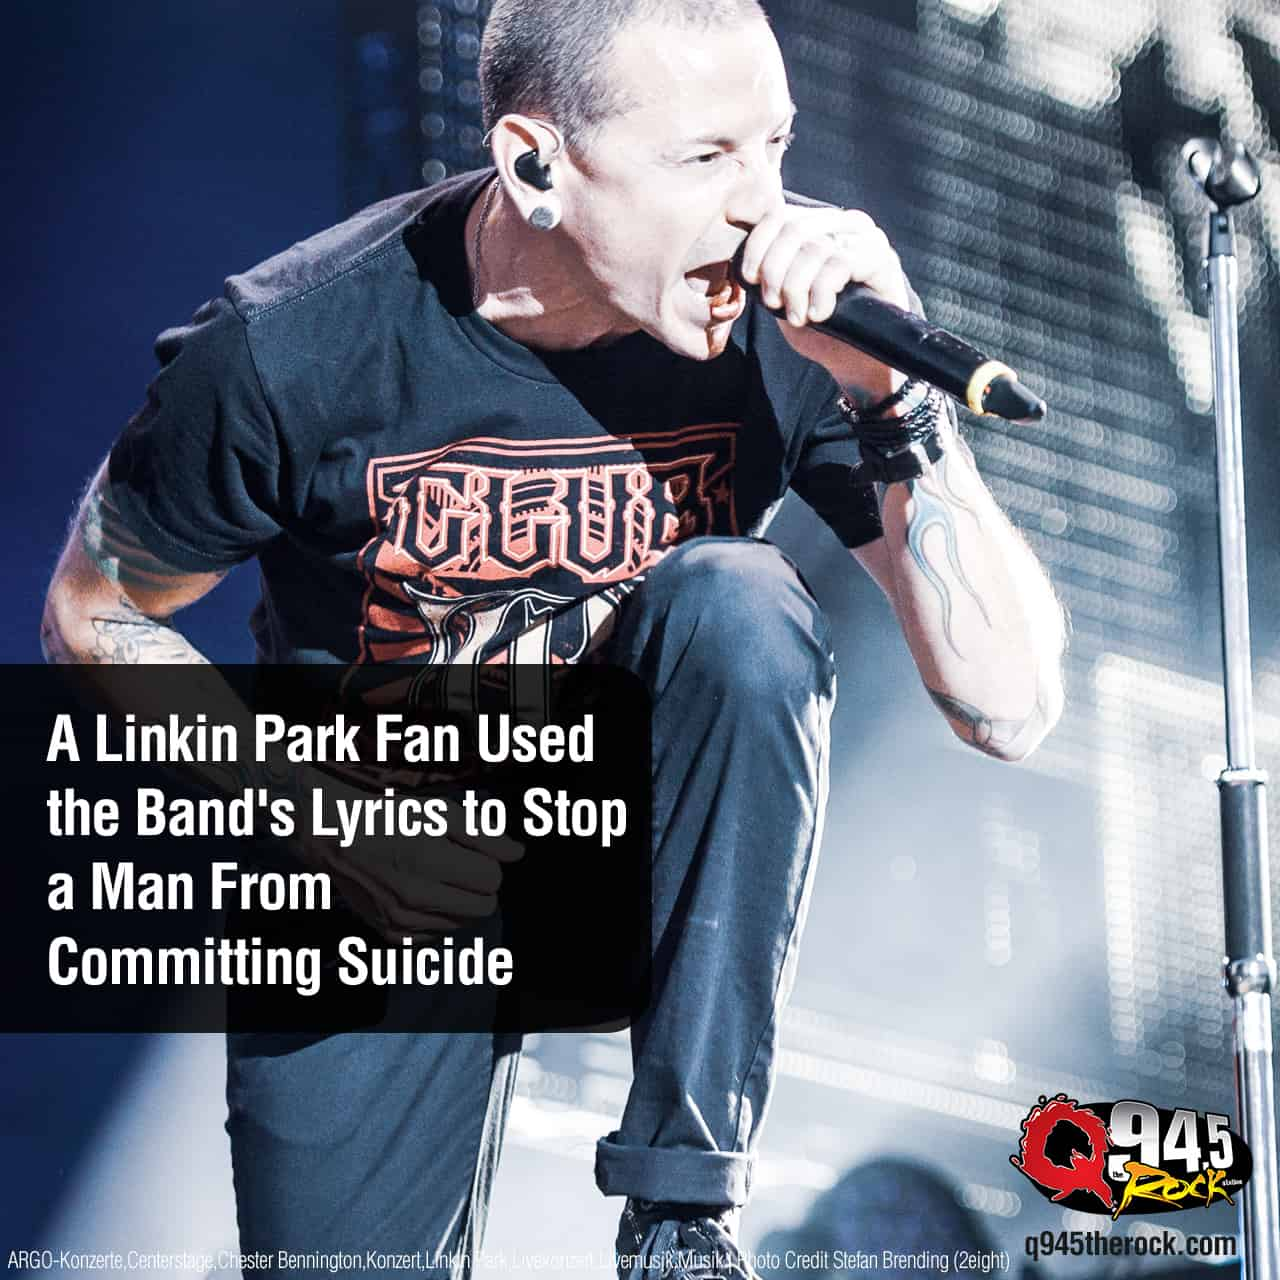 A Linkin Park Fan Used the Band's Lyrics to Stop a Man From Committing Suicide